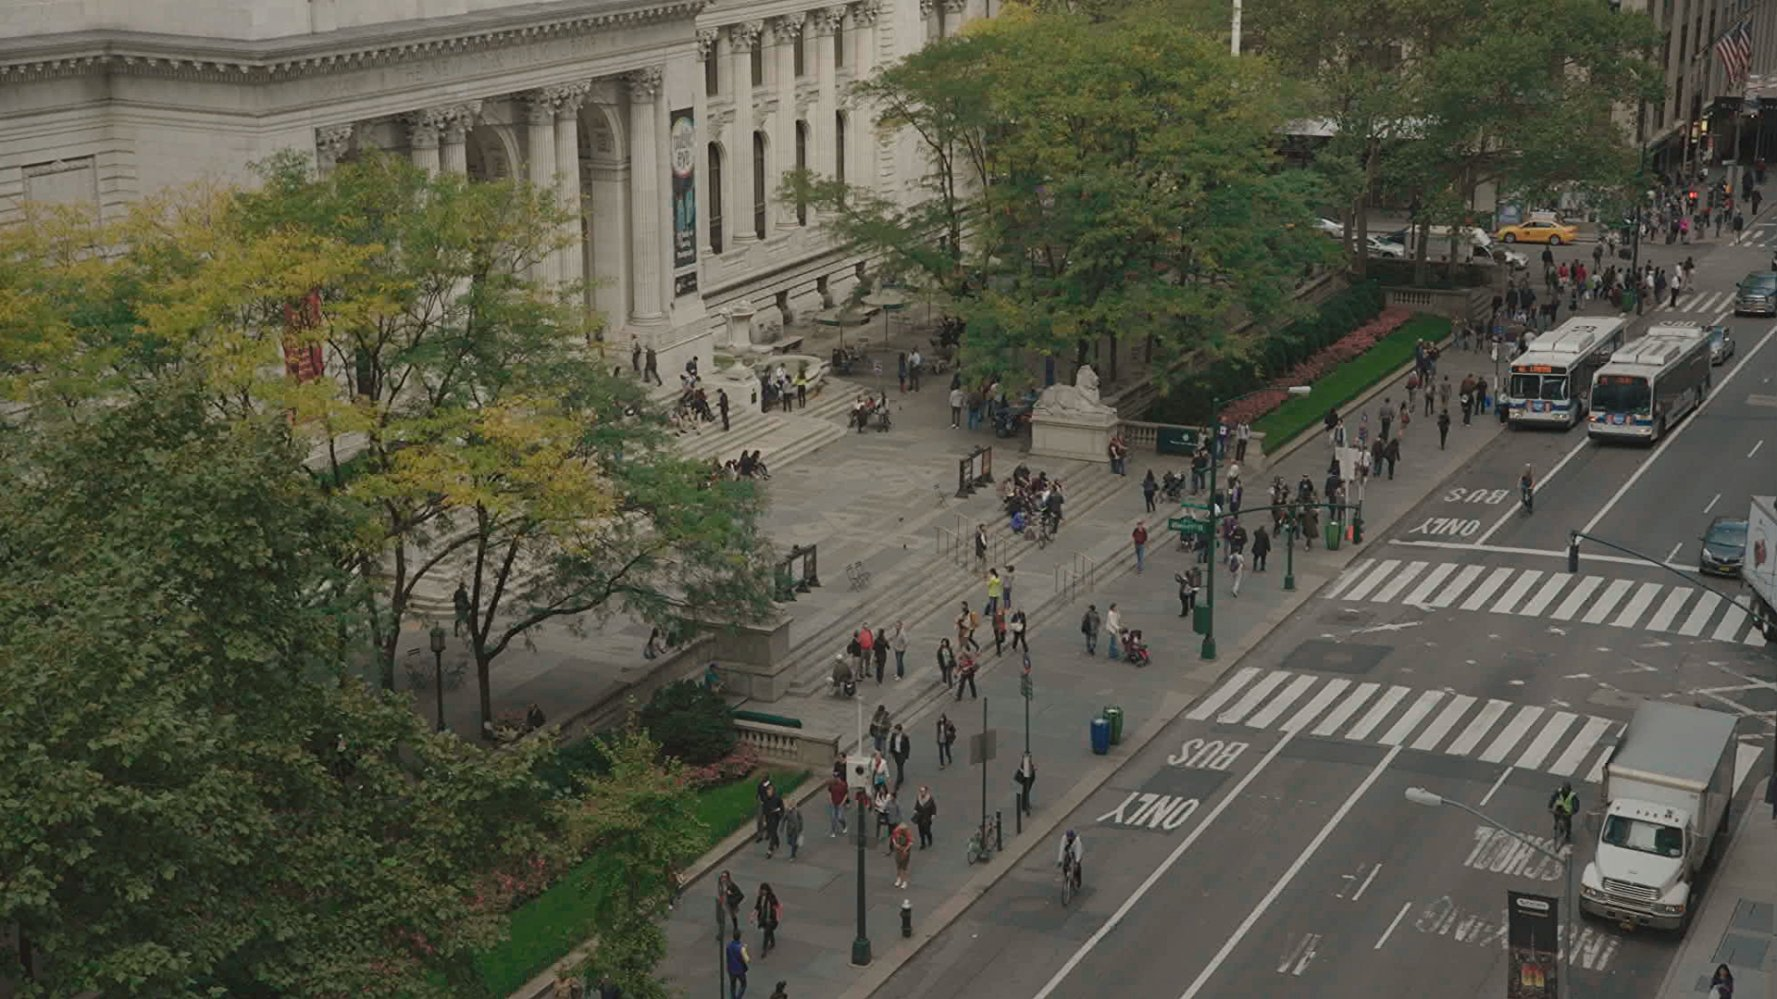 Ex Libris: The New York Public Library – new documentary from legendary filmmaker Frederick Wiseman (September 29 – October 5)